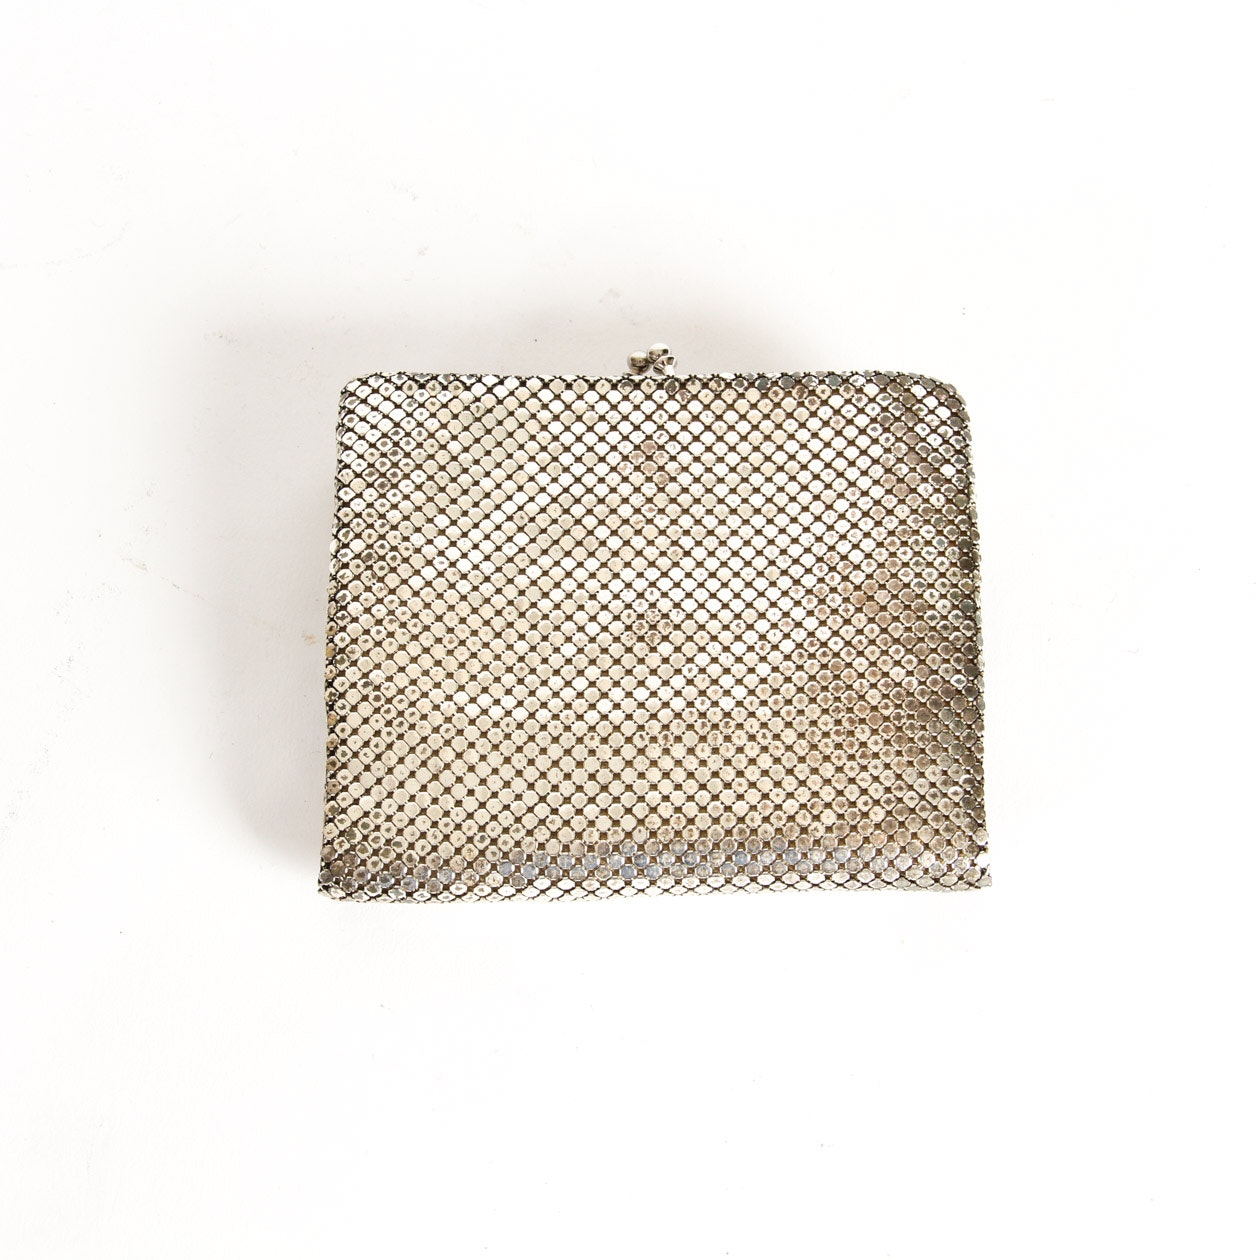 Vintage Chainmail Style Clutch Wallet